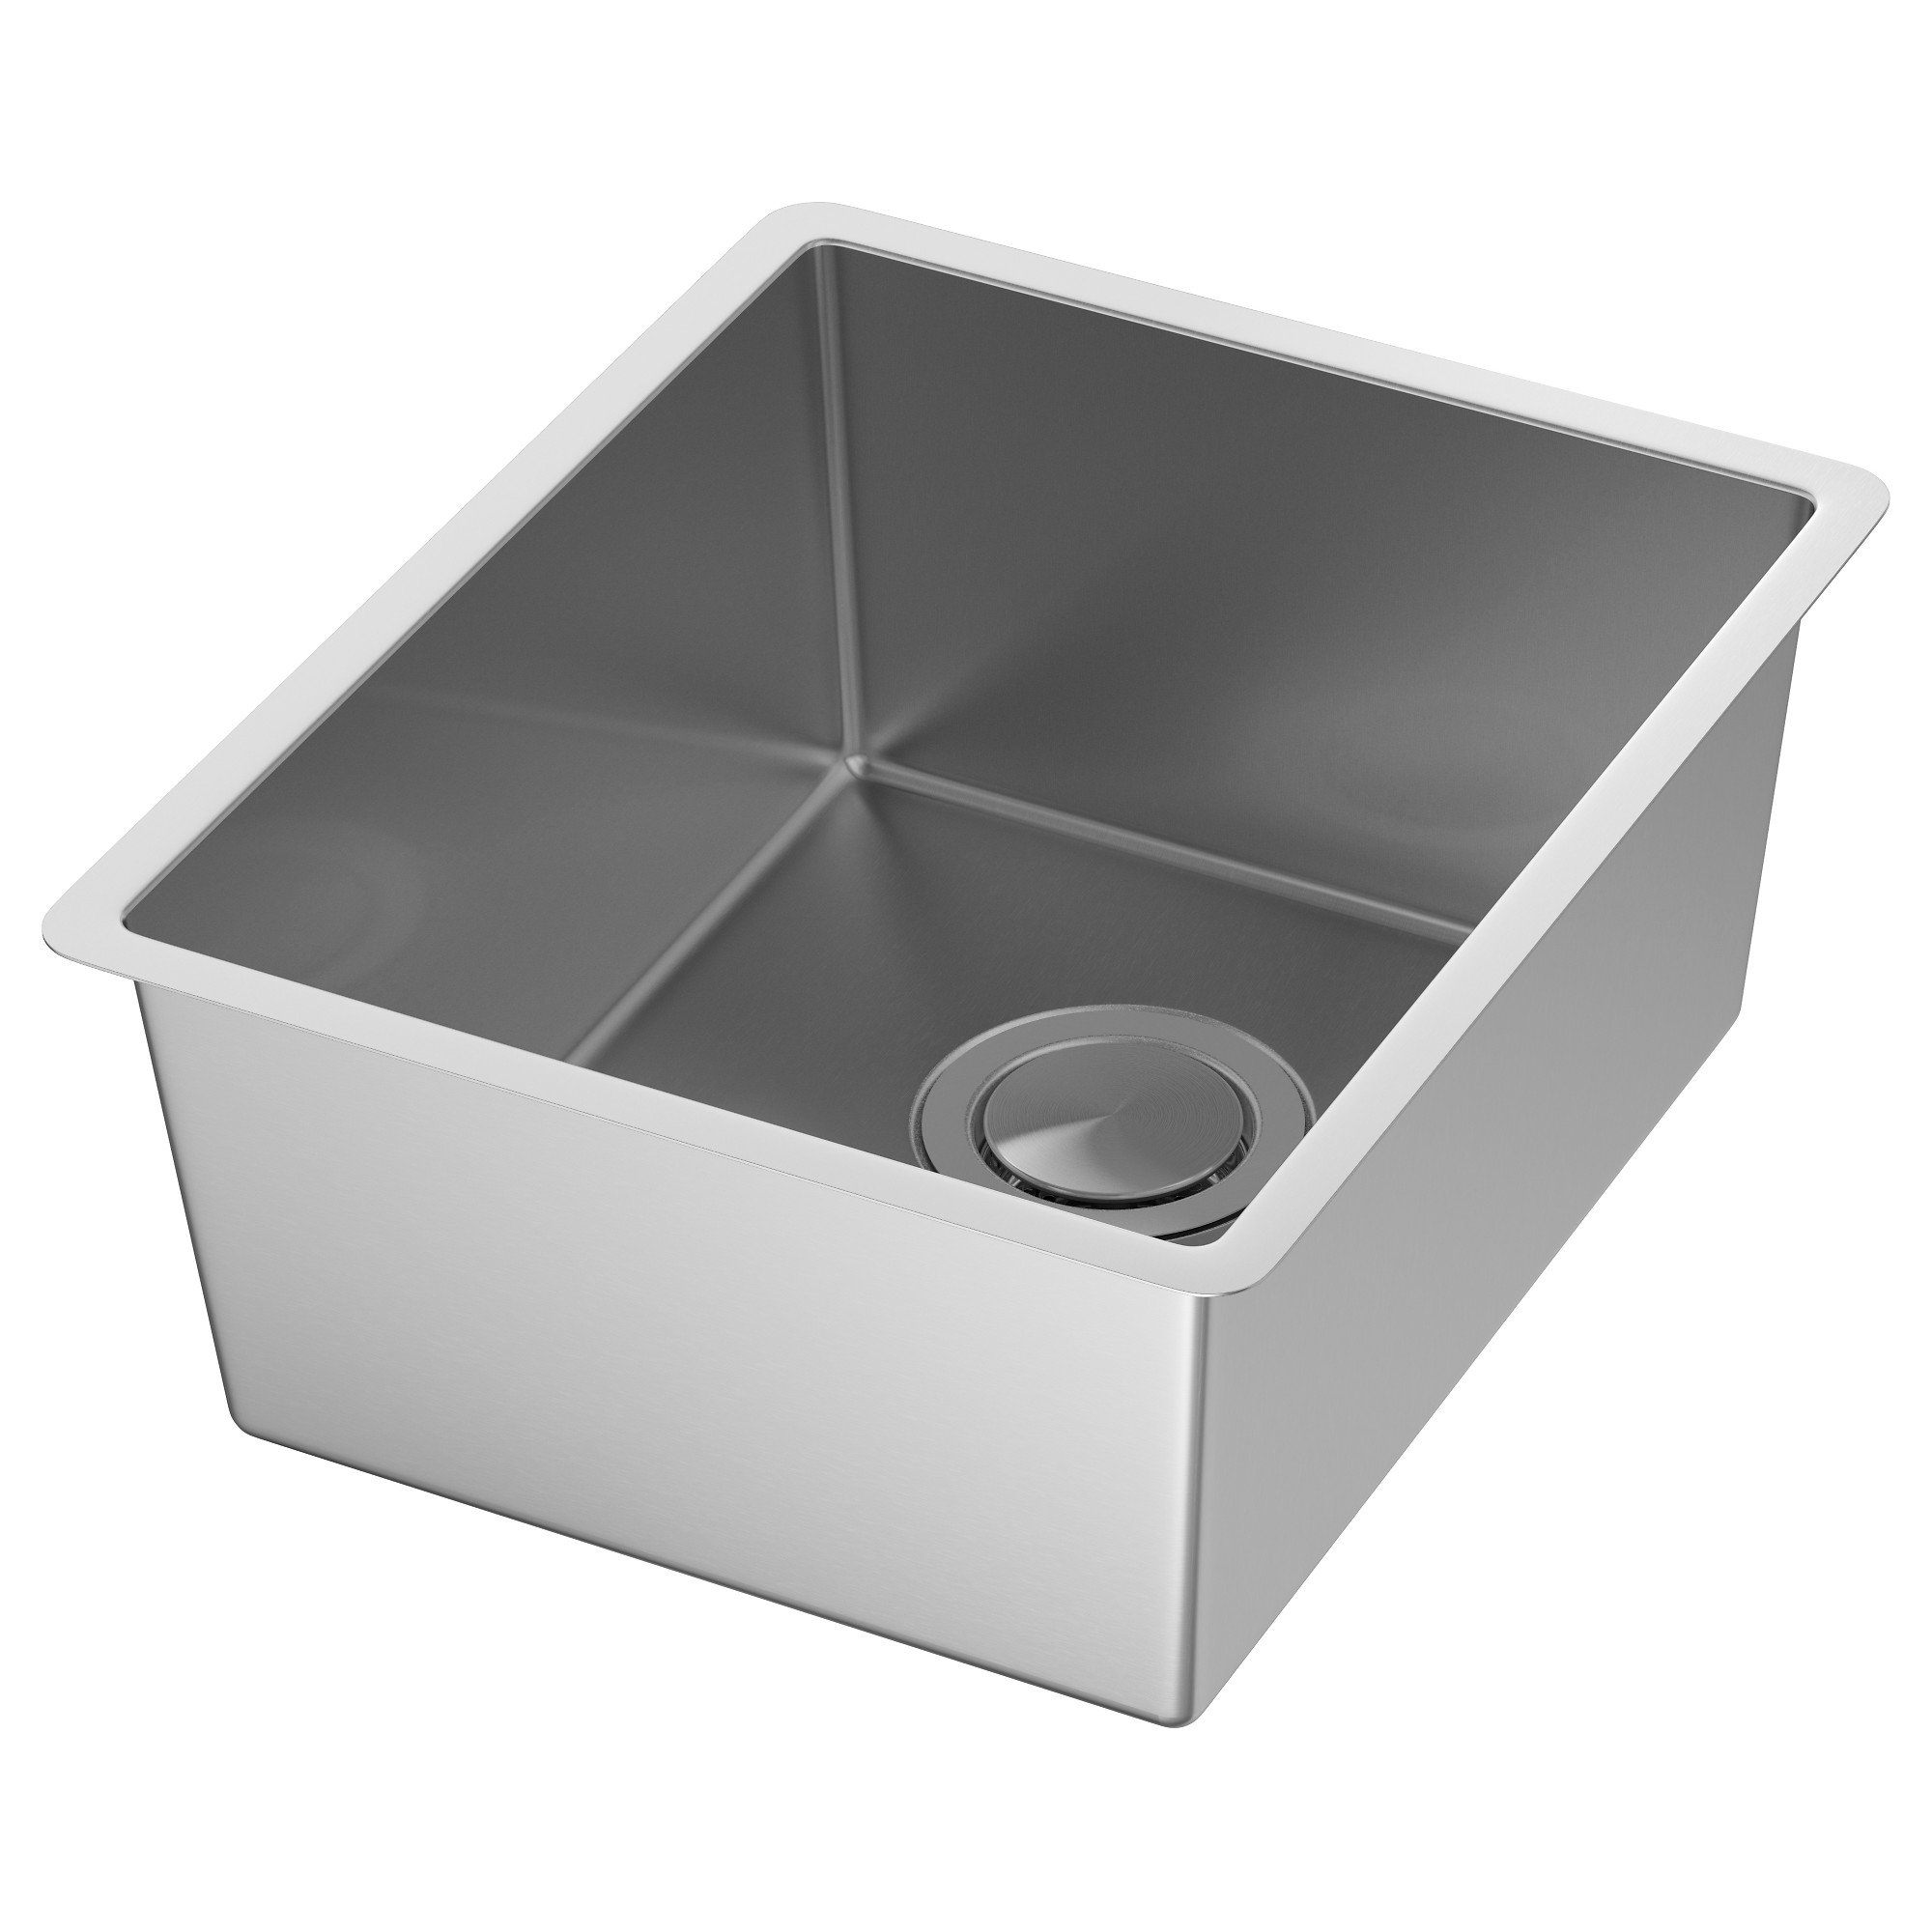 norrsjn sink stainless steel length 14 58 depth 17 3. beautiful ideas. Home Design Ideas